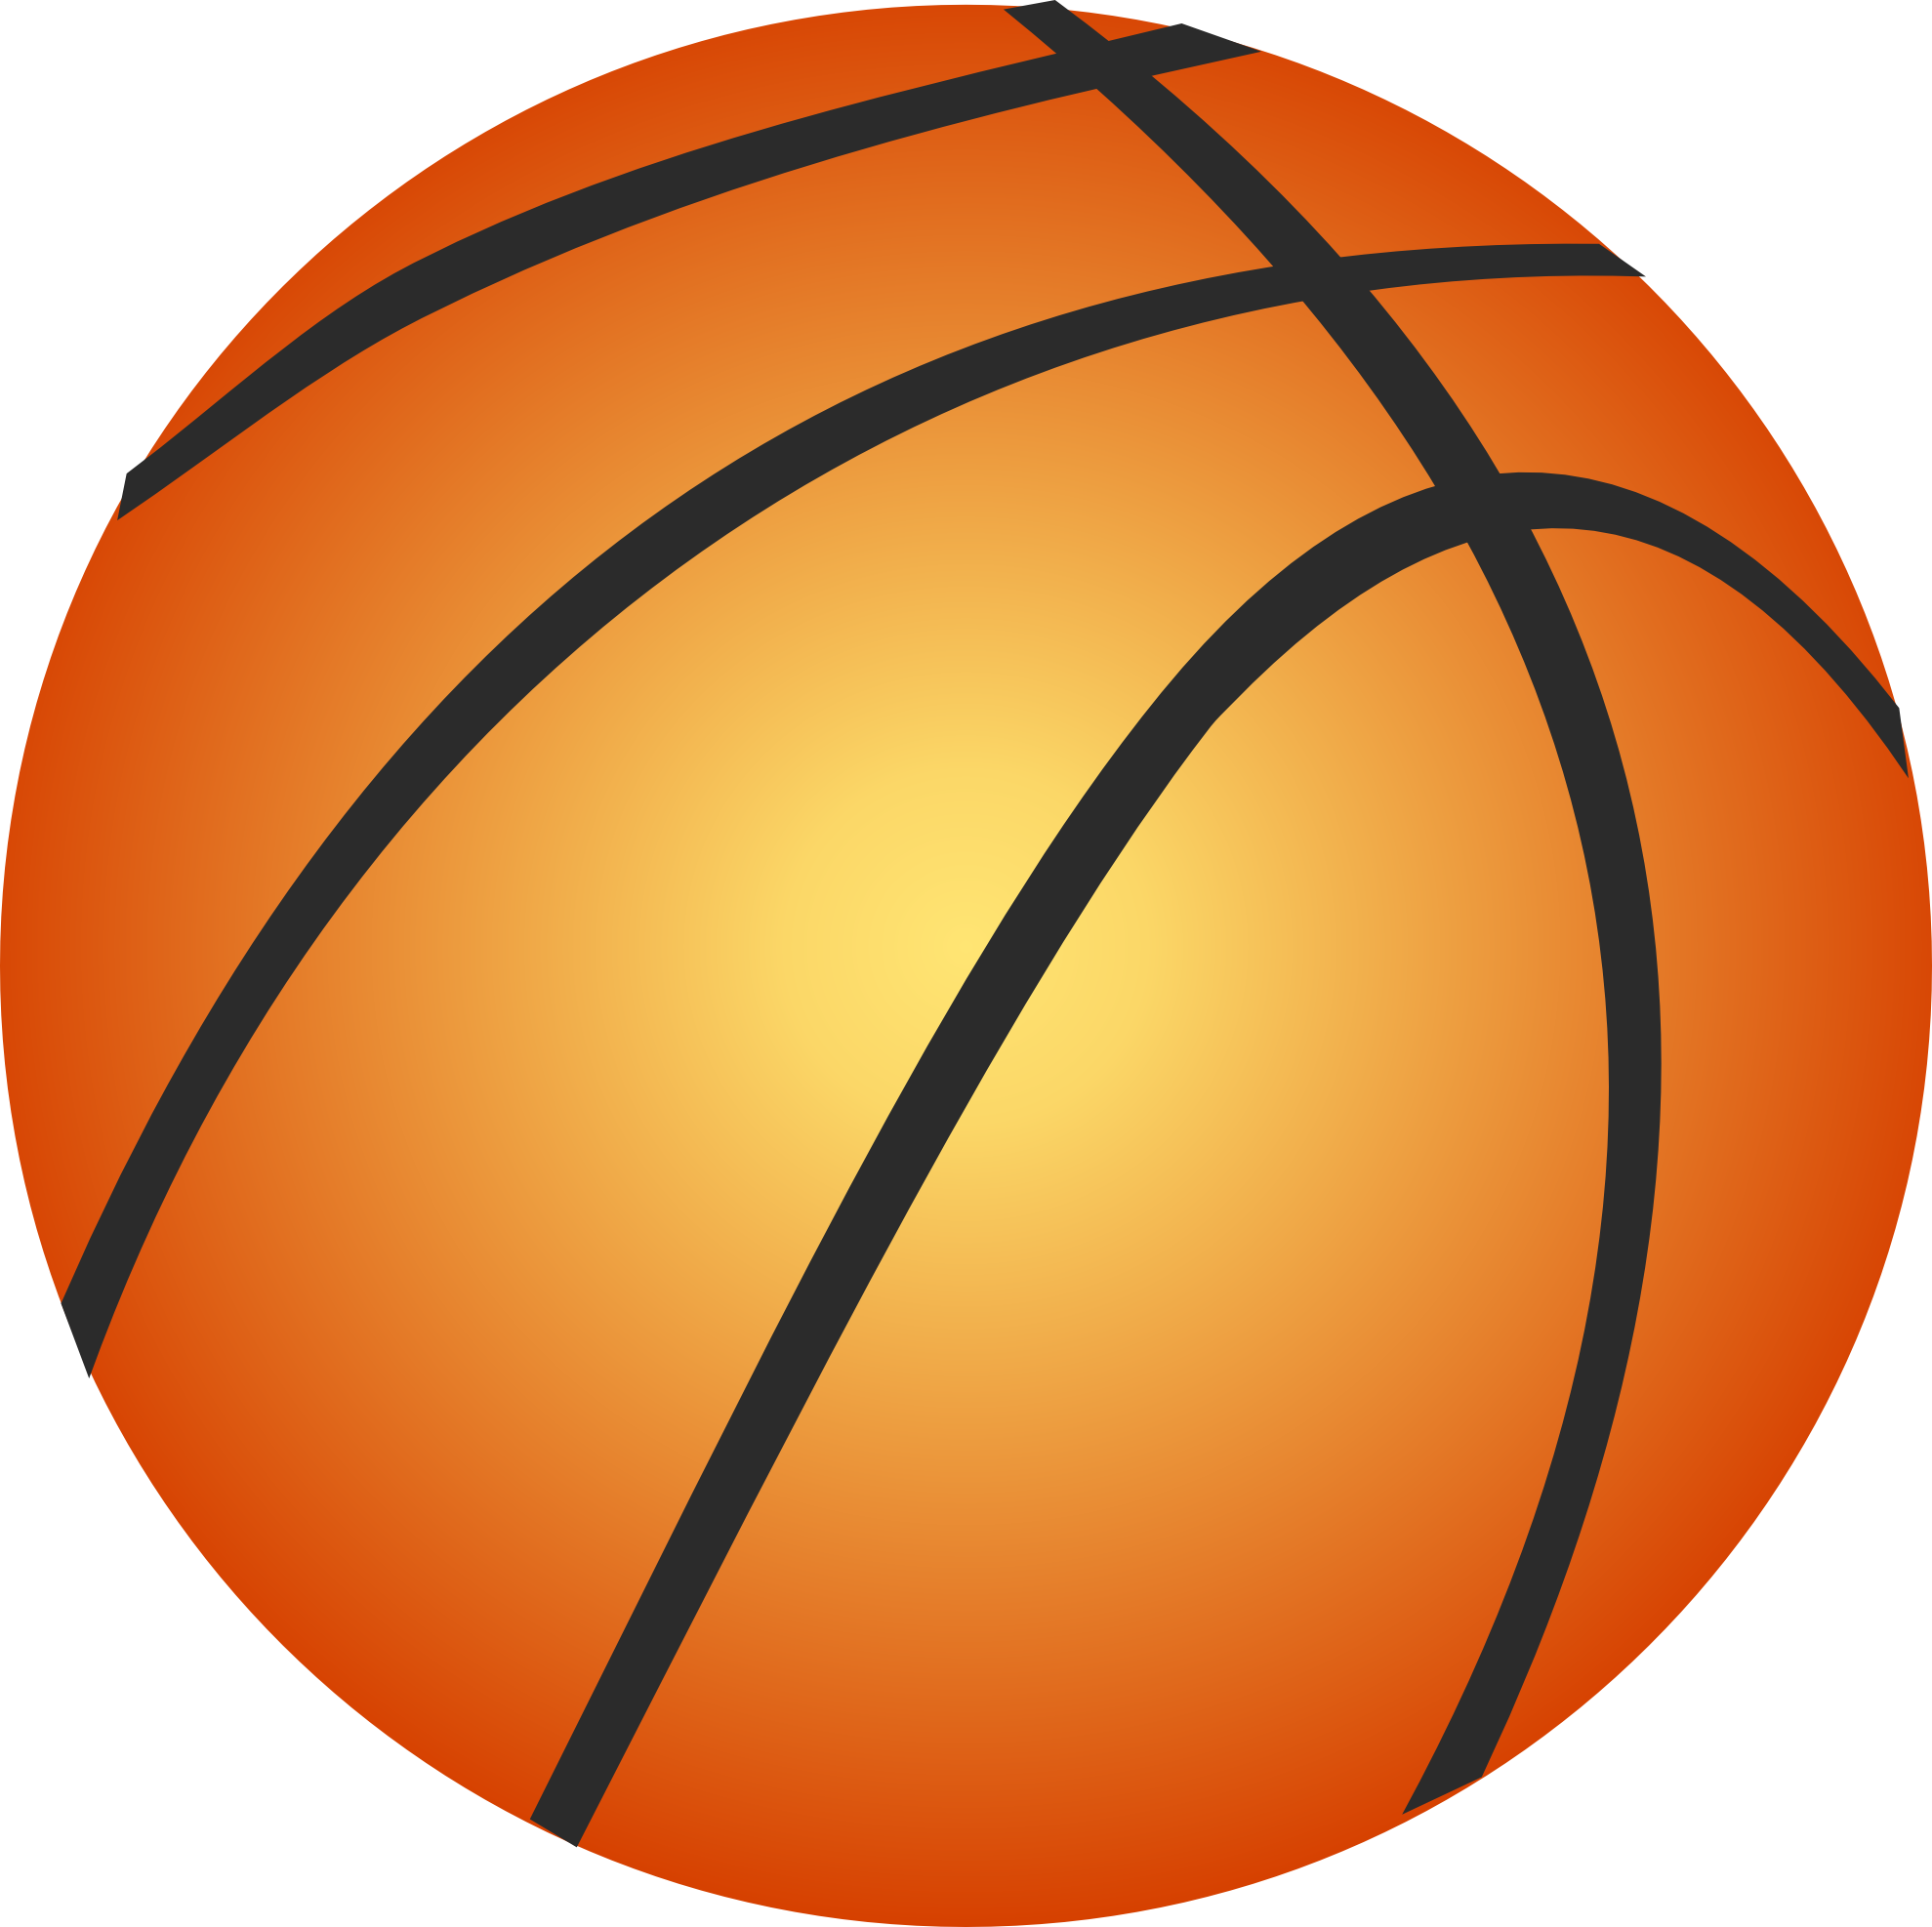 freeuse download Clock clipart basketball. Ball clip art tags.